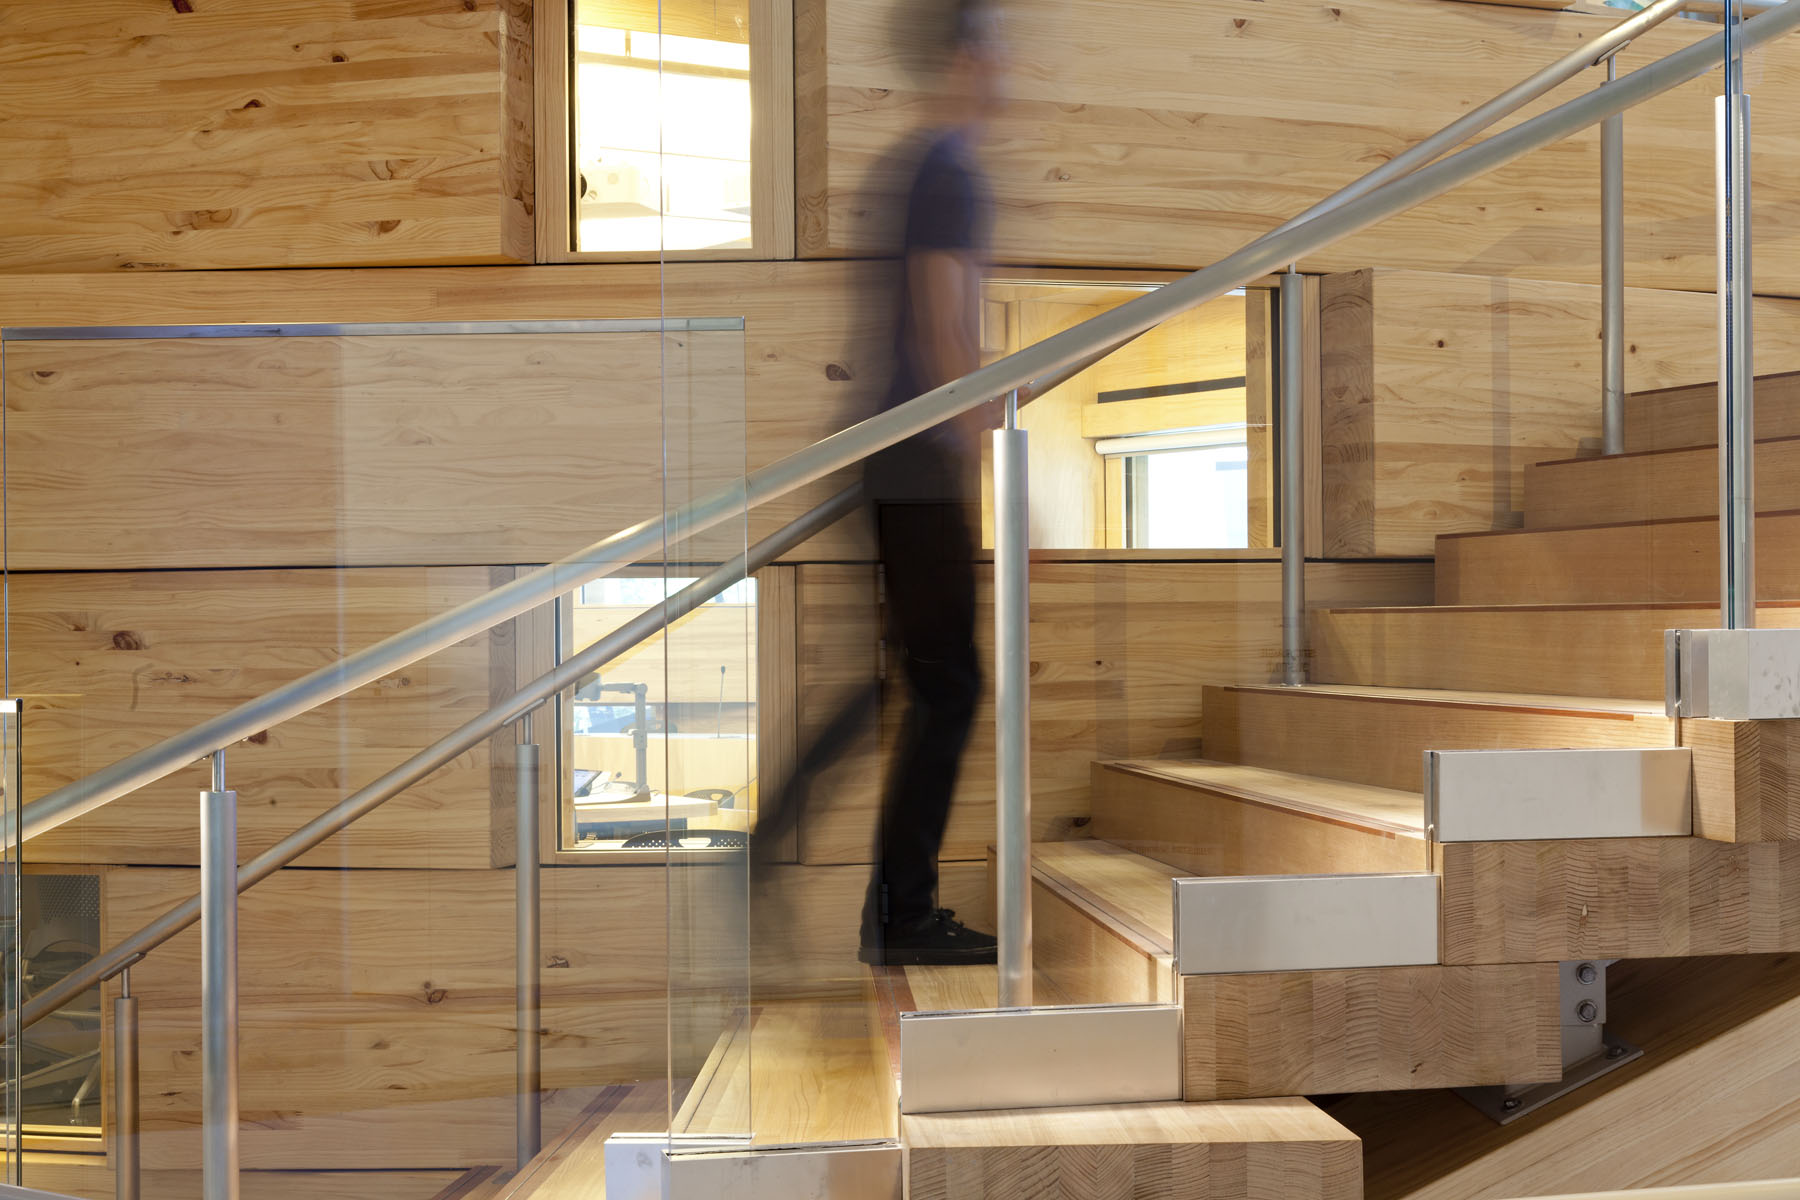 Stair K wraps around the oval classroom on level 3 to the student lounge above on level 4. It is made of Victorian ash.